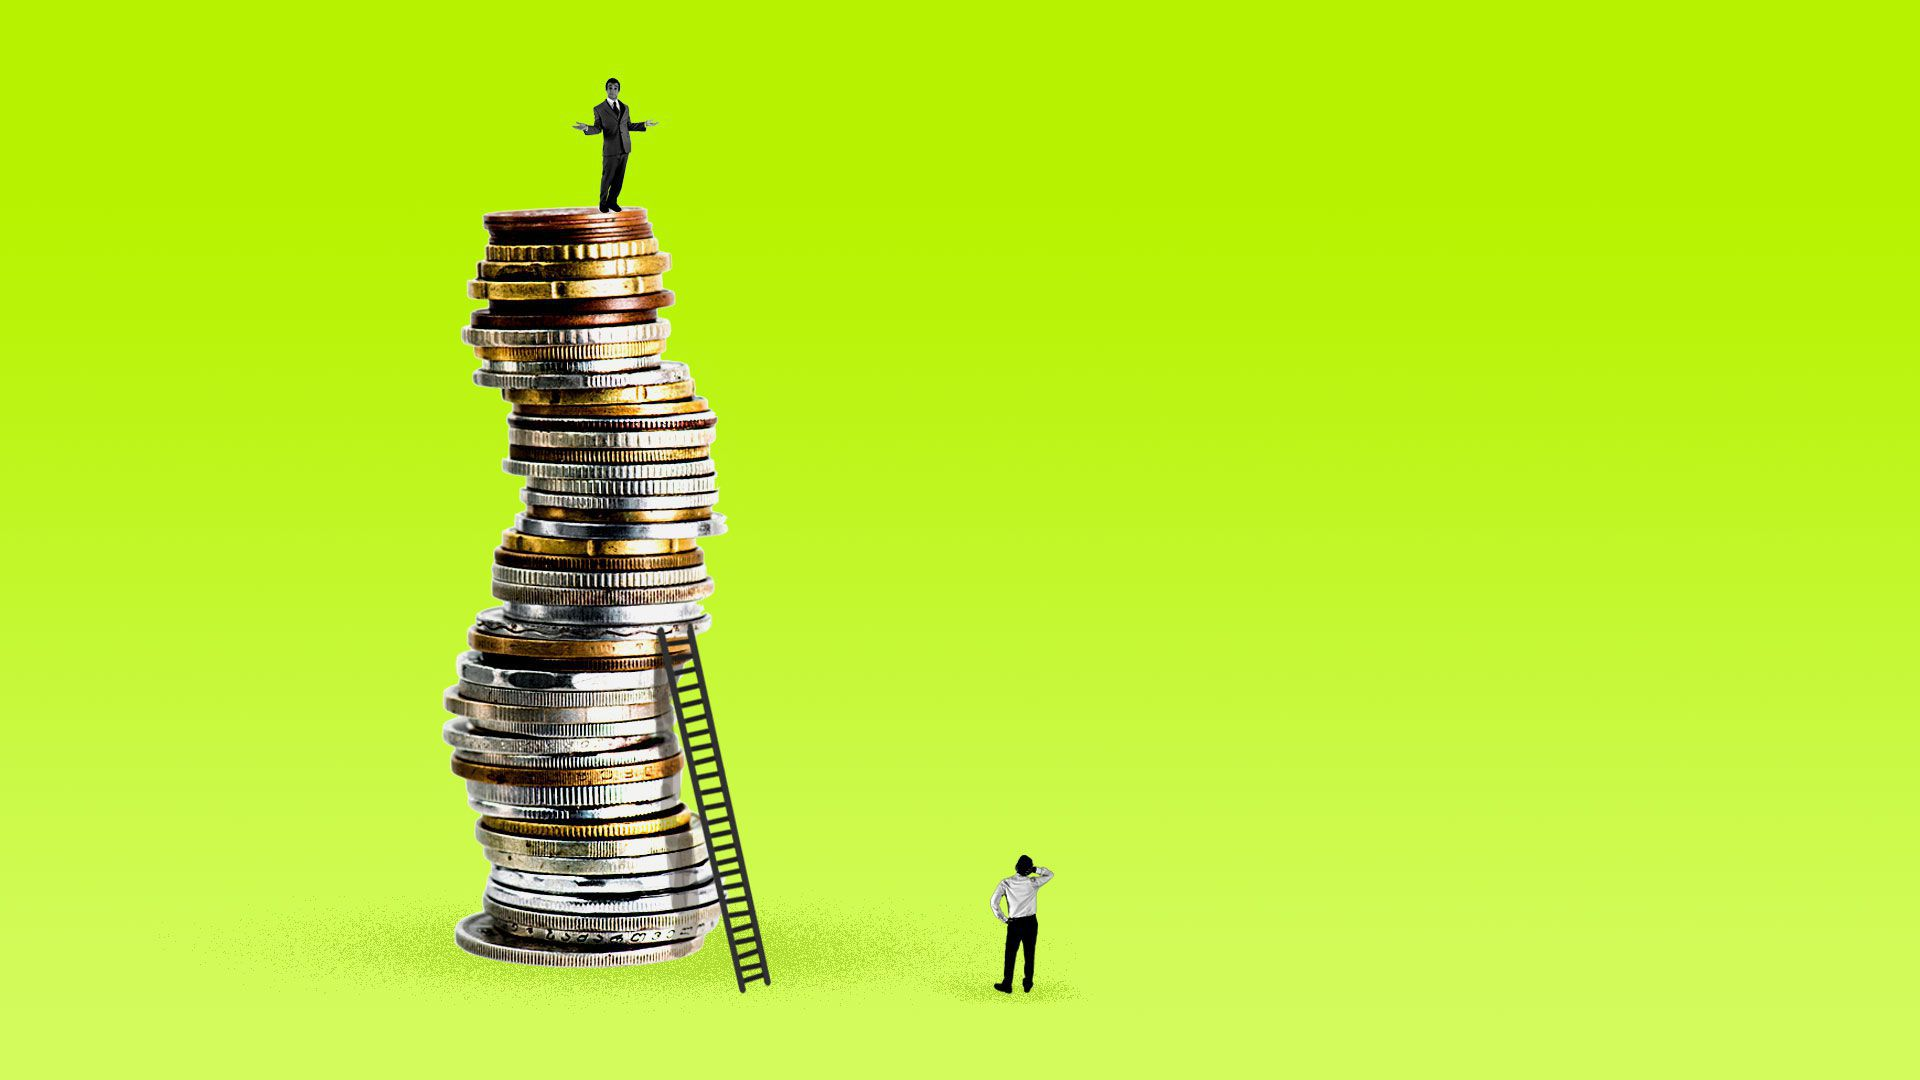 illustration of man climbing stack of coins